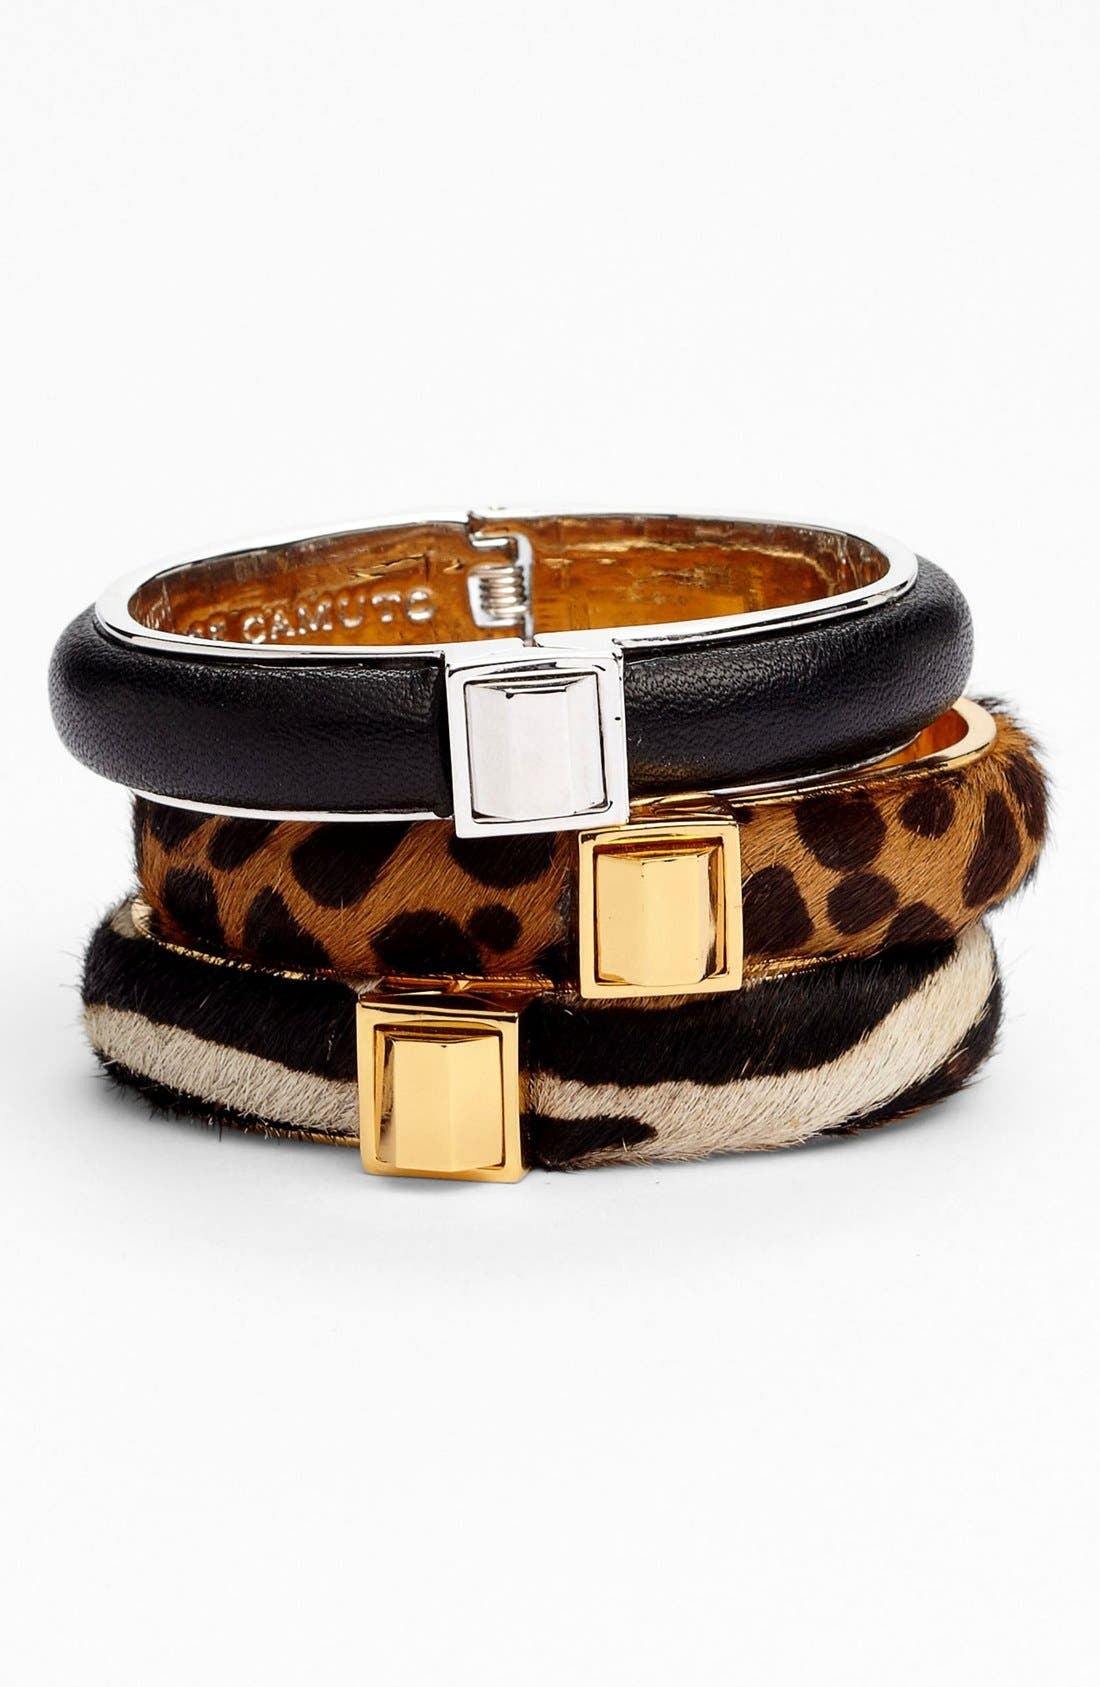 Alternate Image 1 Selected - Vince Camuto 'Call of the Wild' Hinged Bangle (Nordstrom Exclusive)